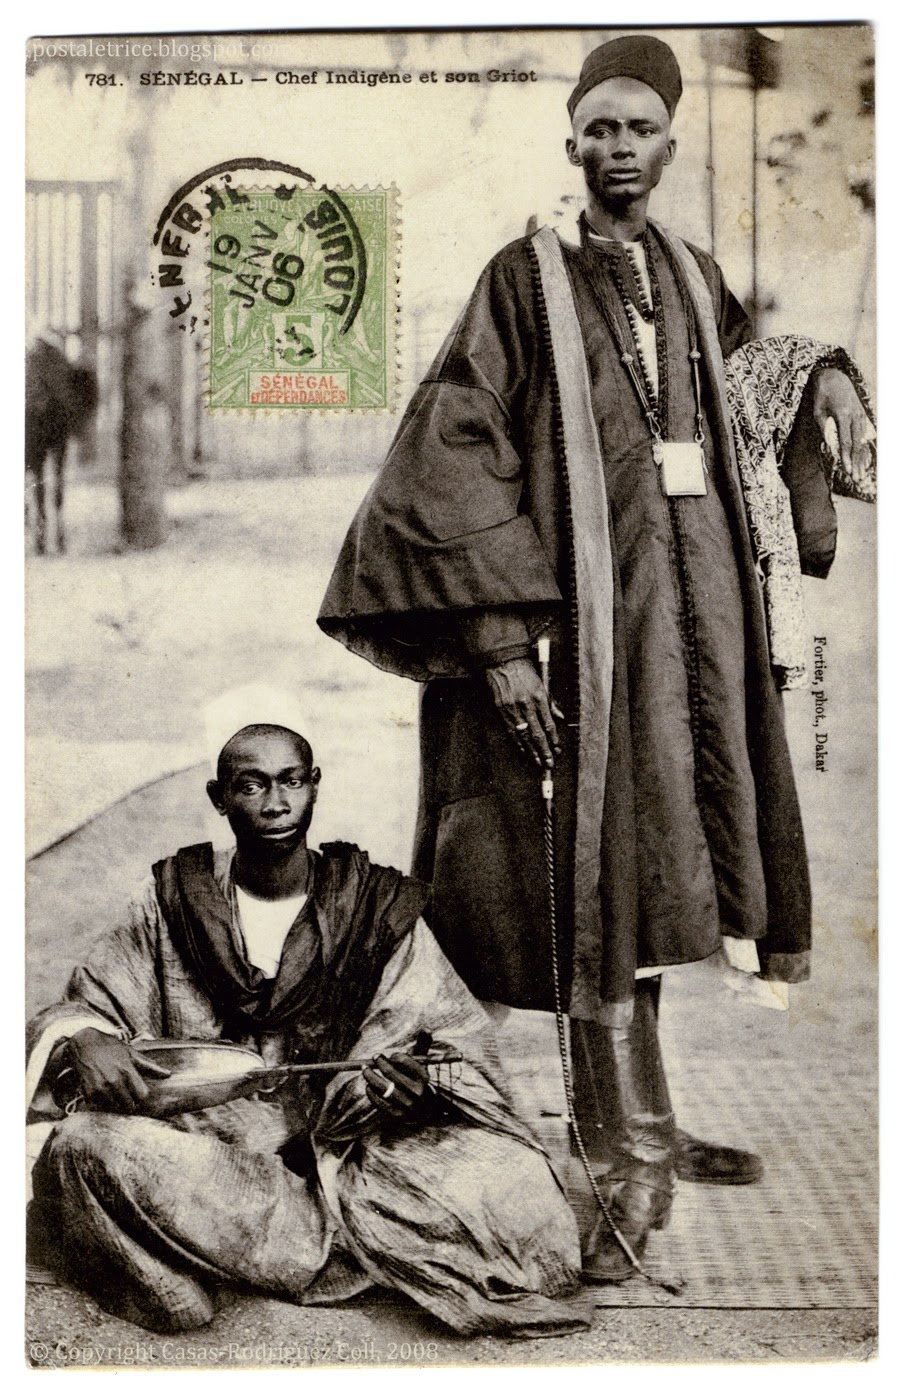 Senegalese chief and his griot.jpeg